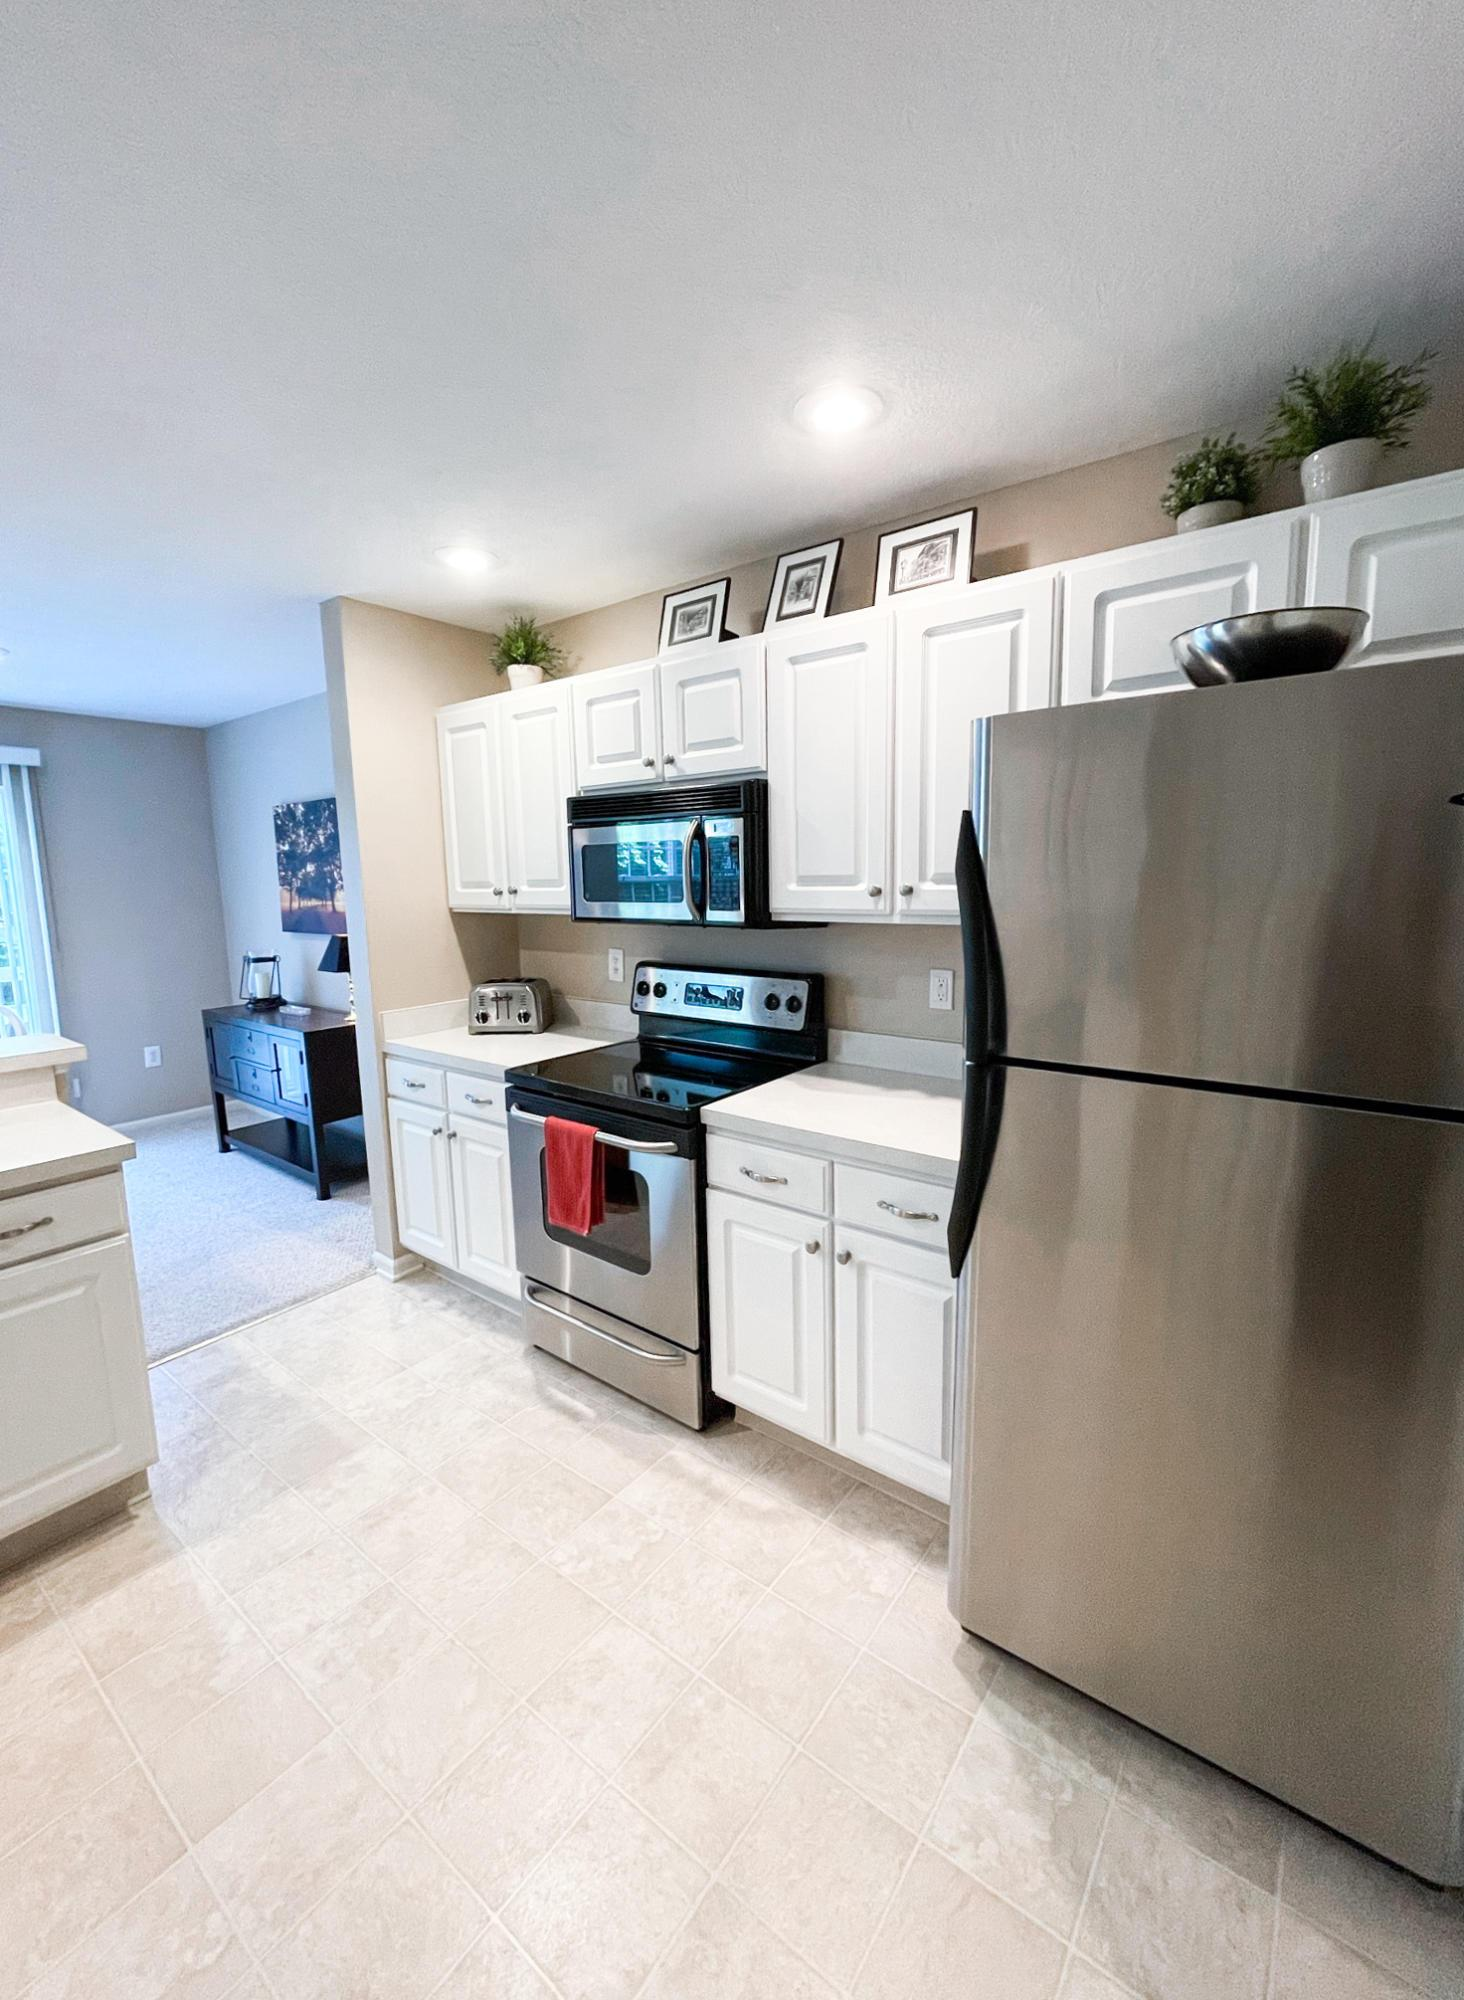 All Stainless appliances.